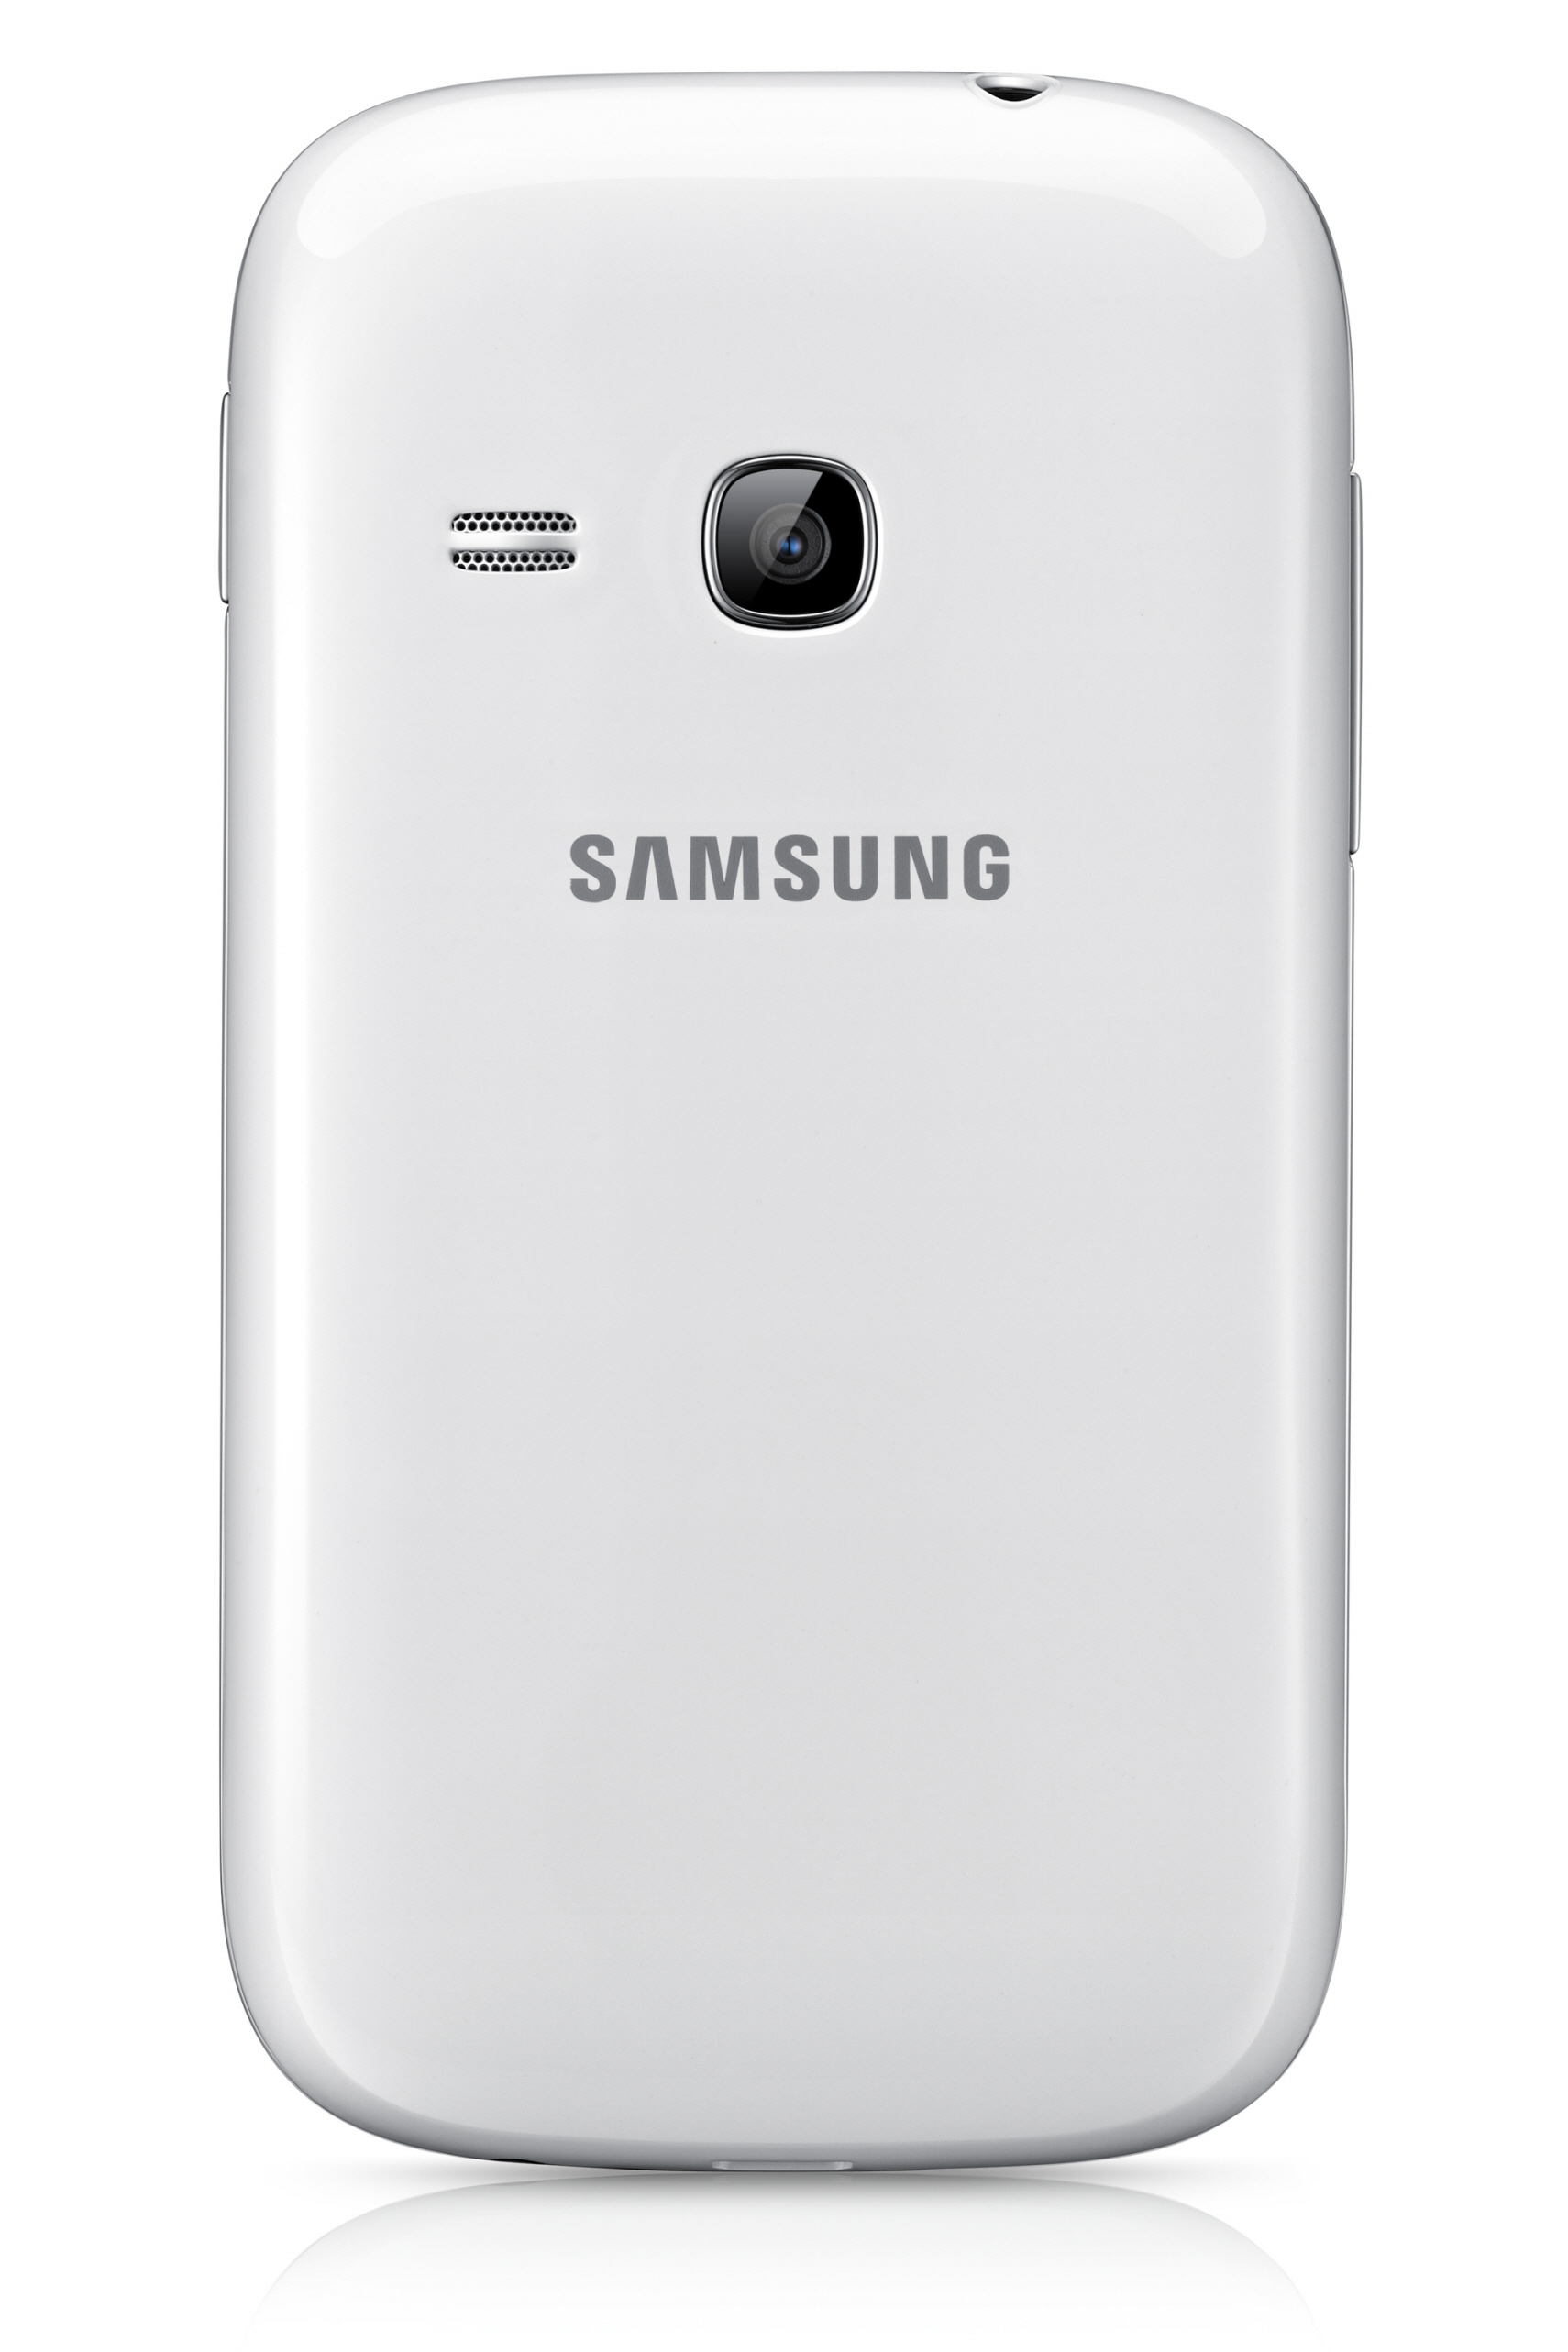 Samsung officially announced the Galaxy Young